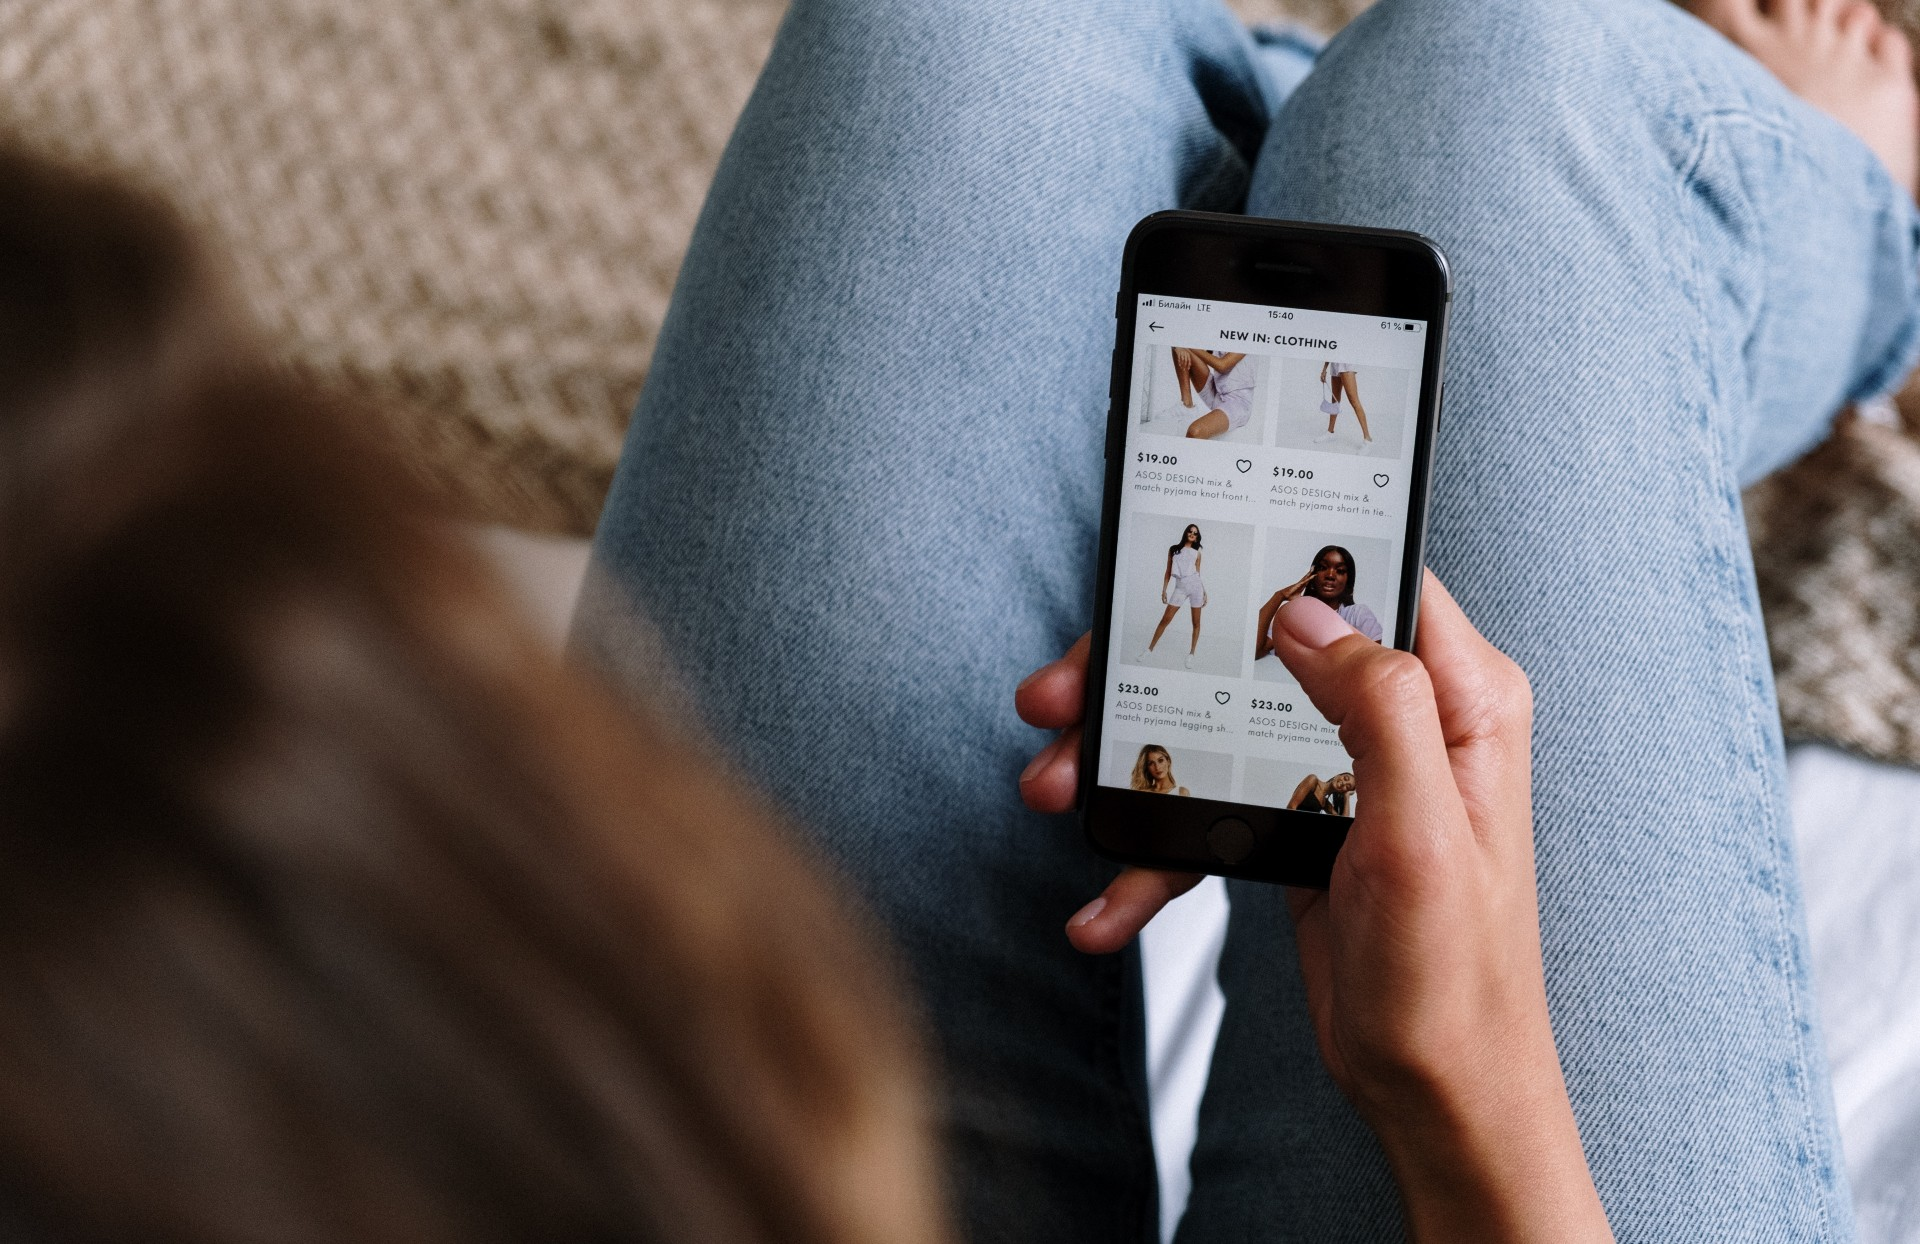 People are getting addicted to easy online shopping